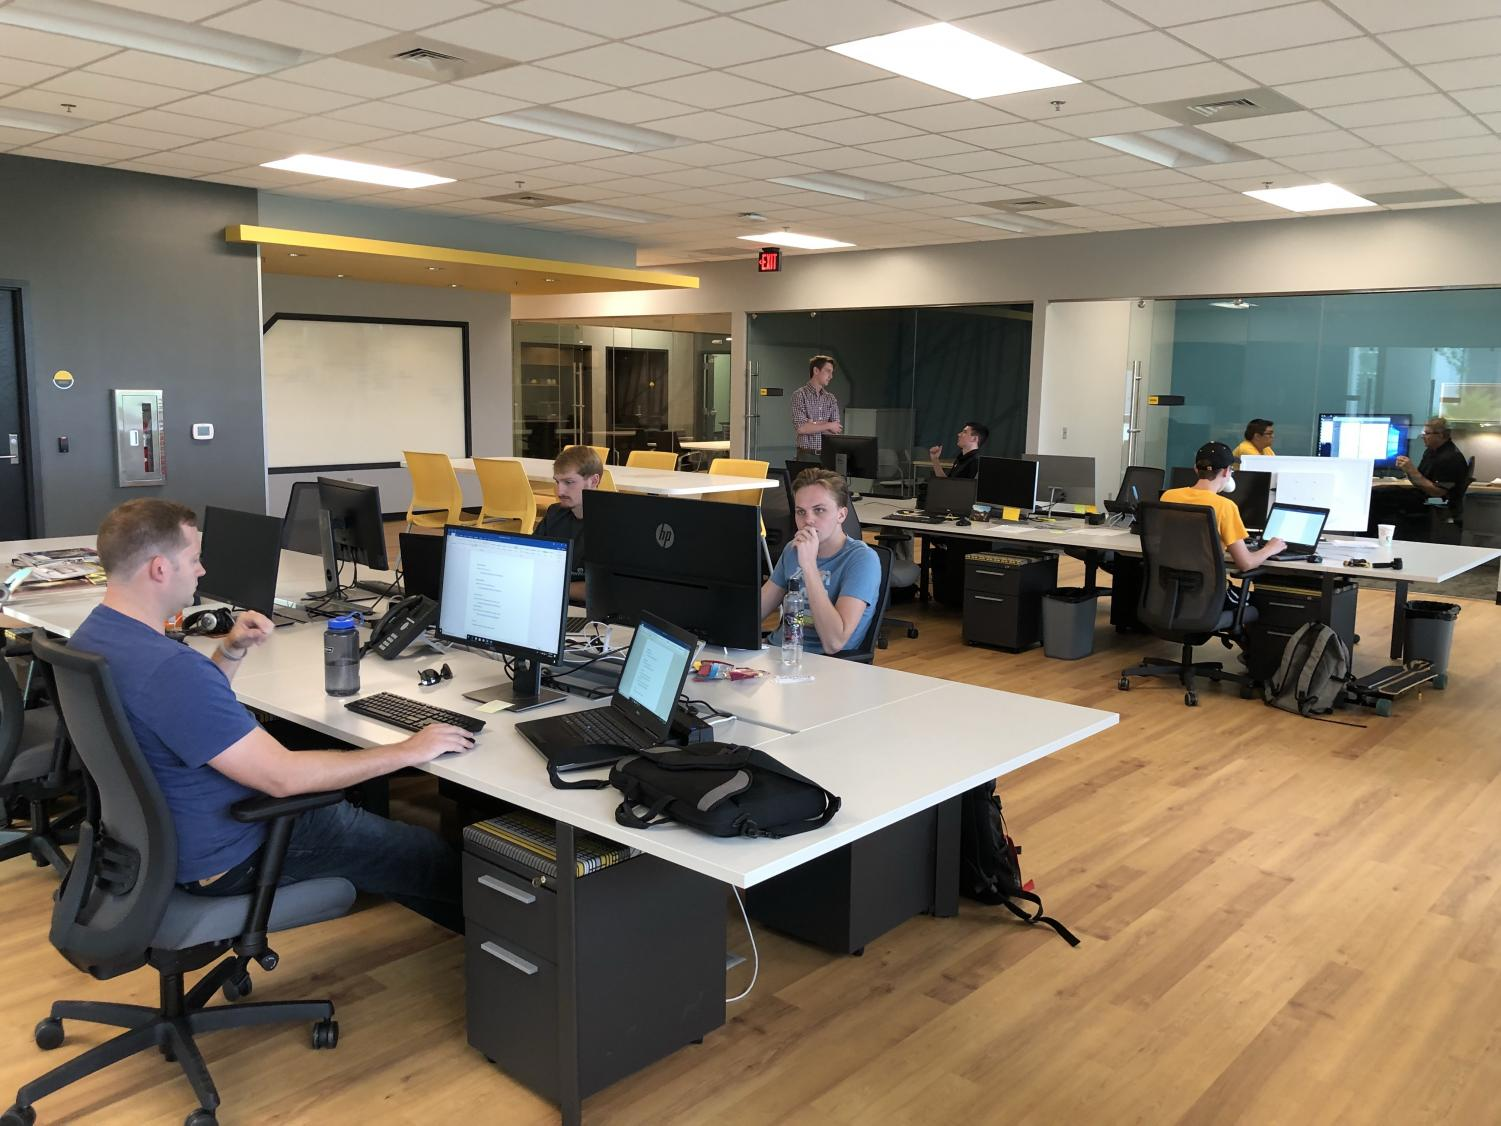 Student analysts conduct research for the U.S. Army's Aviation and Missile Research, Development and Engineering Center (AMRDEC) Wednesday, Aug. 29 at the FirePoint Innovations Center on Innovation Campus.